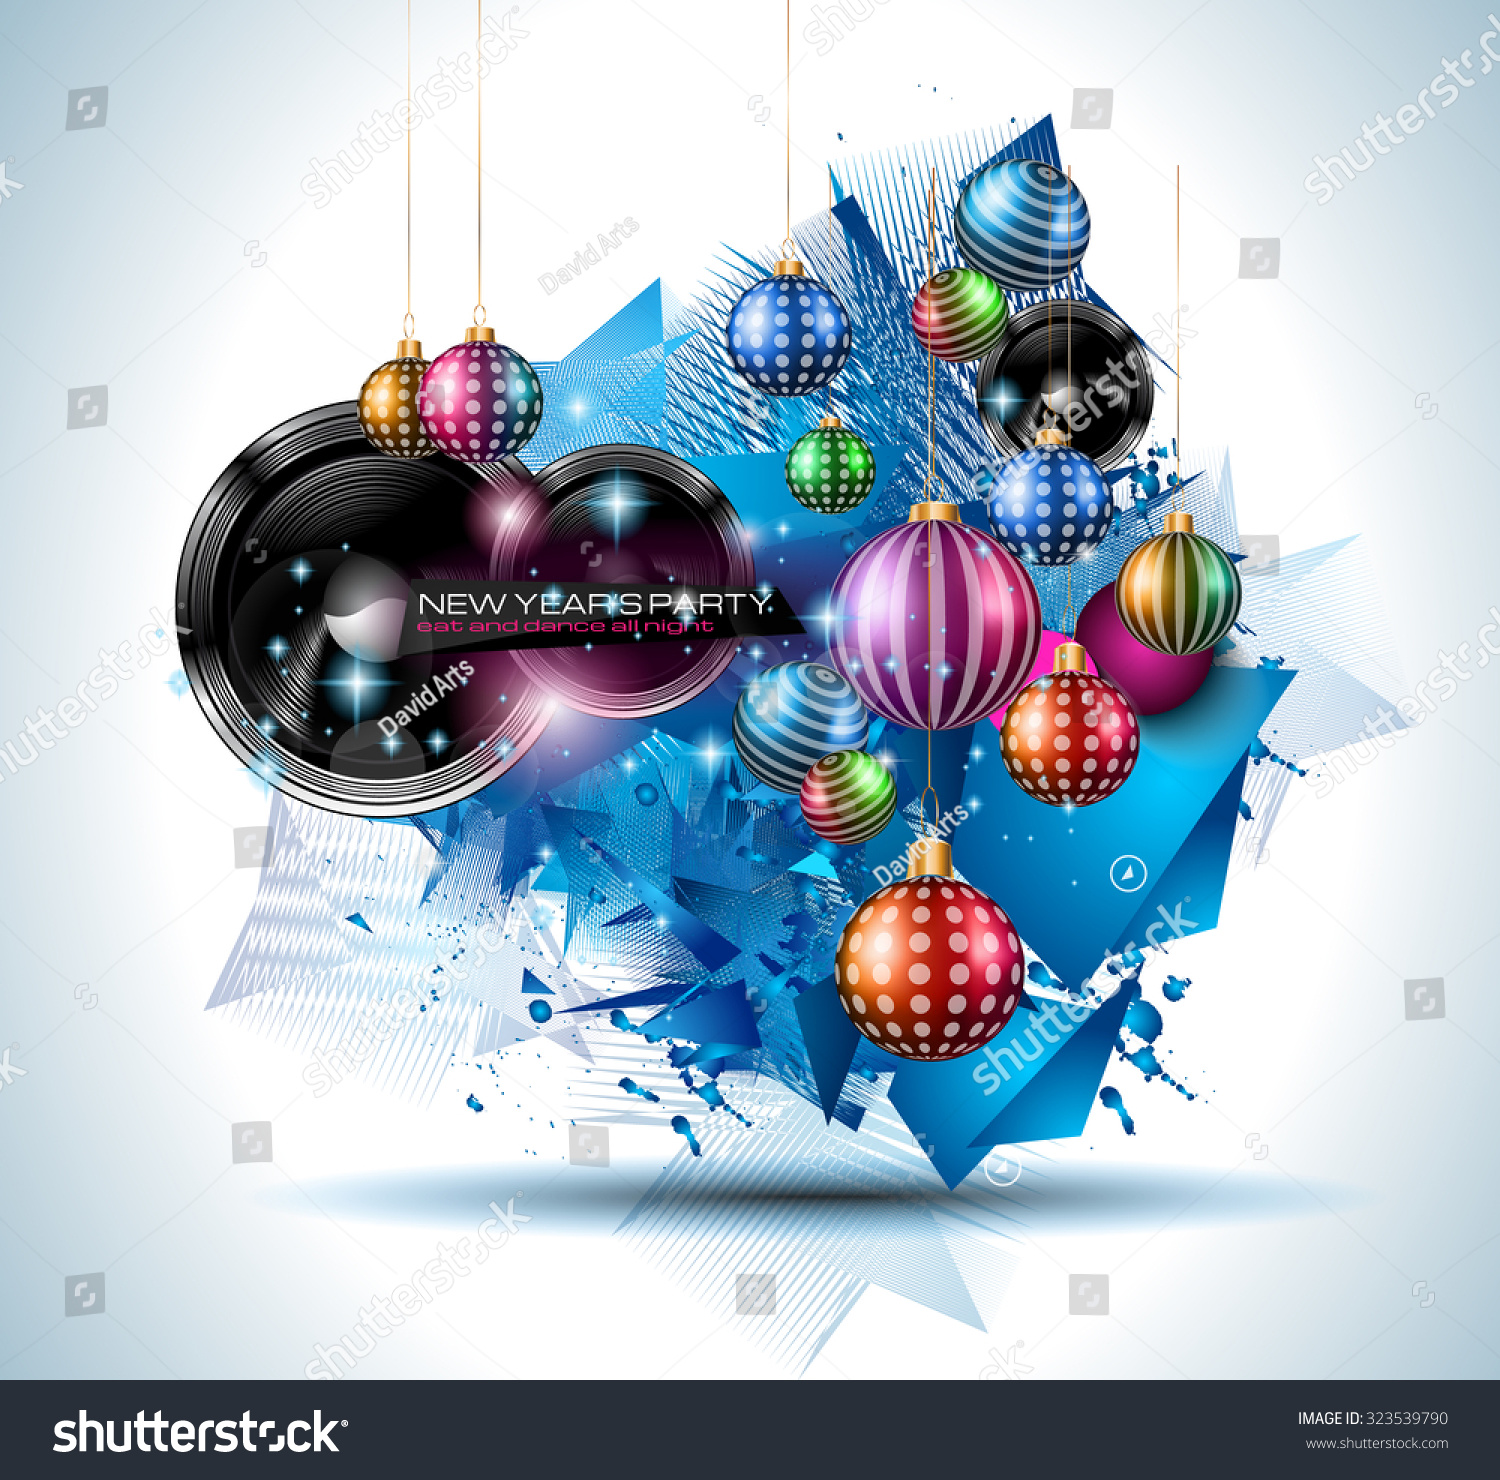 christmas party flyer music night events stock vector  christmas party flyer for music night events club poster background disco flyers private